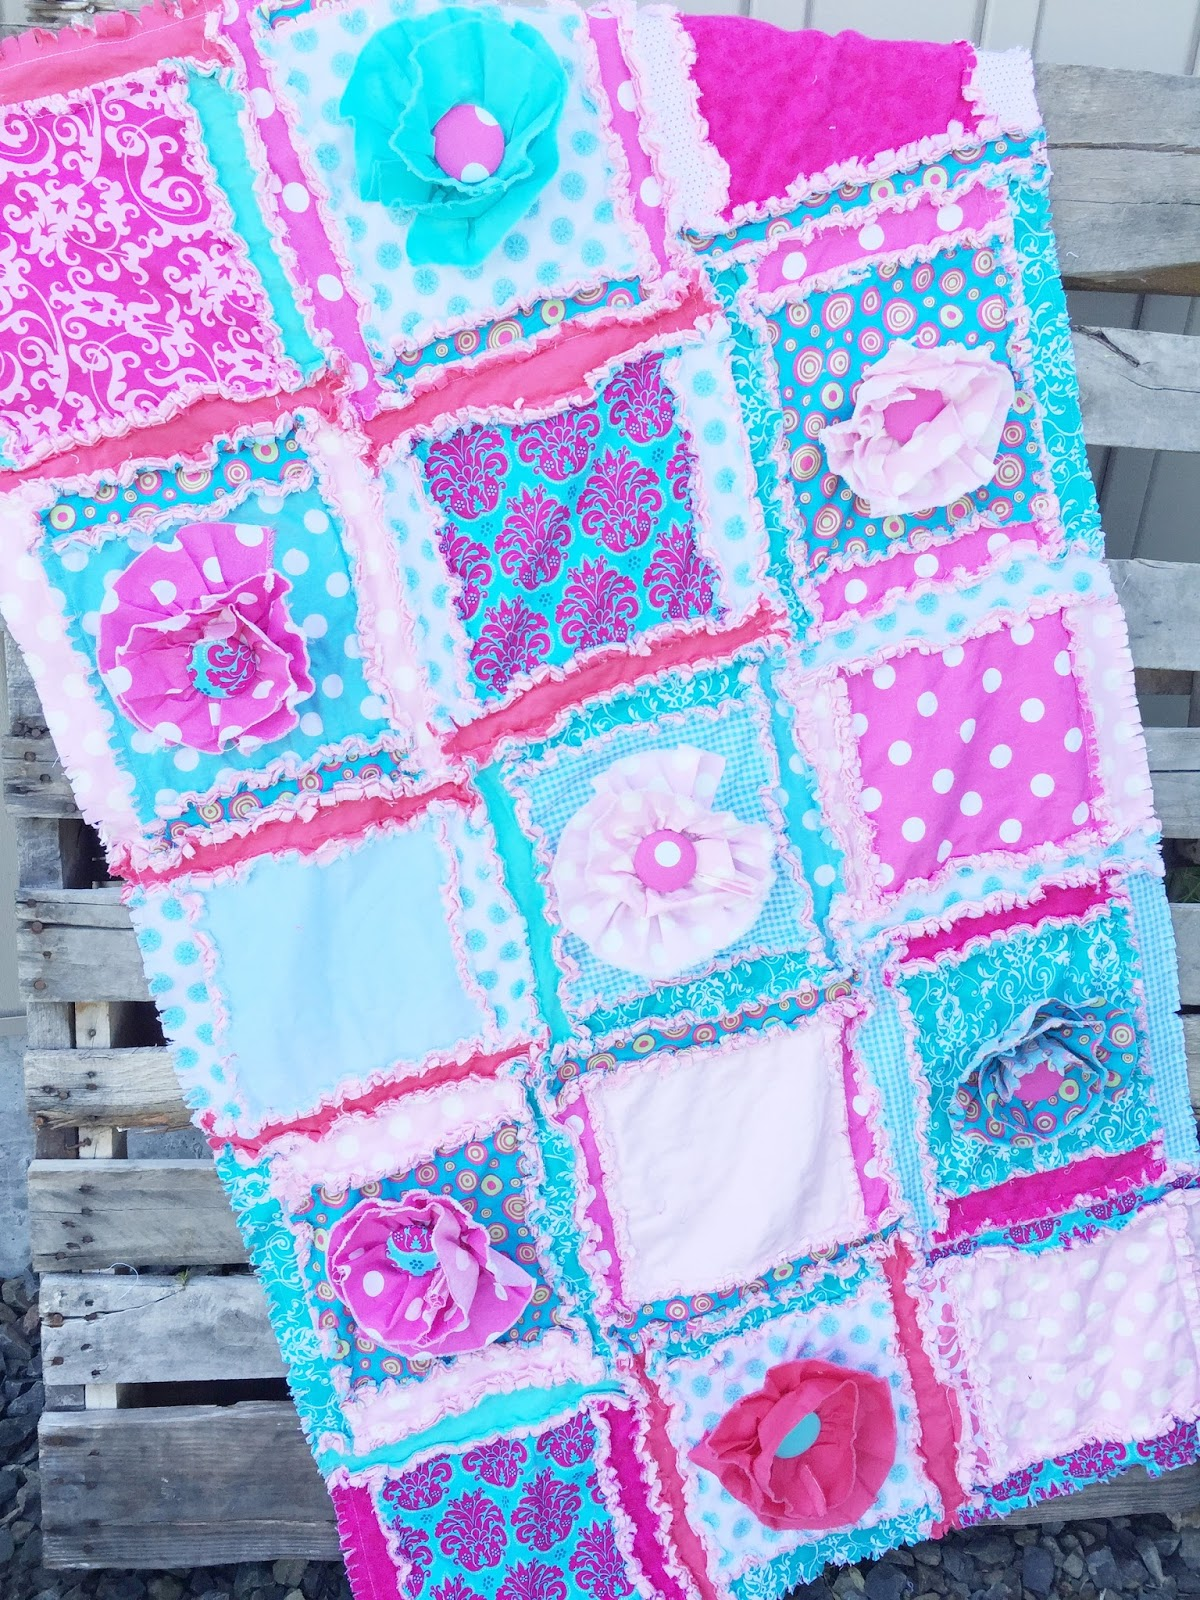 What Fabric Do I Use for Rag Quilts? from the Pro Rag Quilt